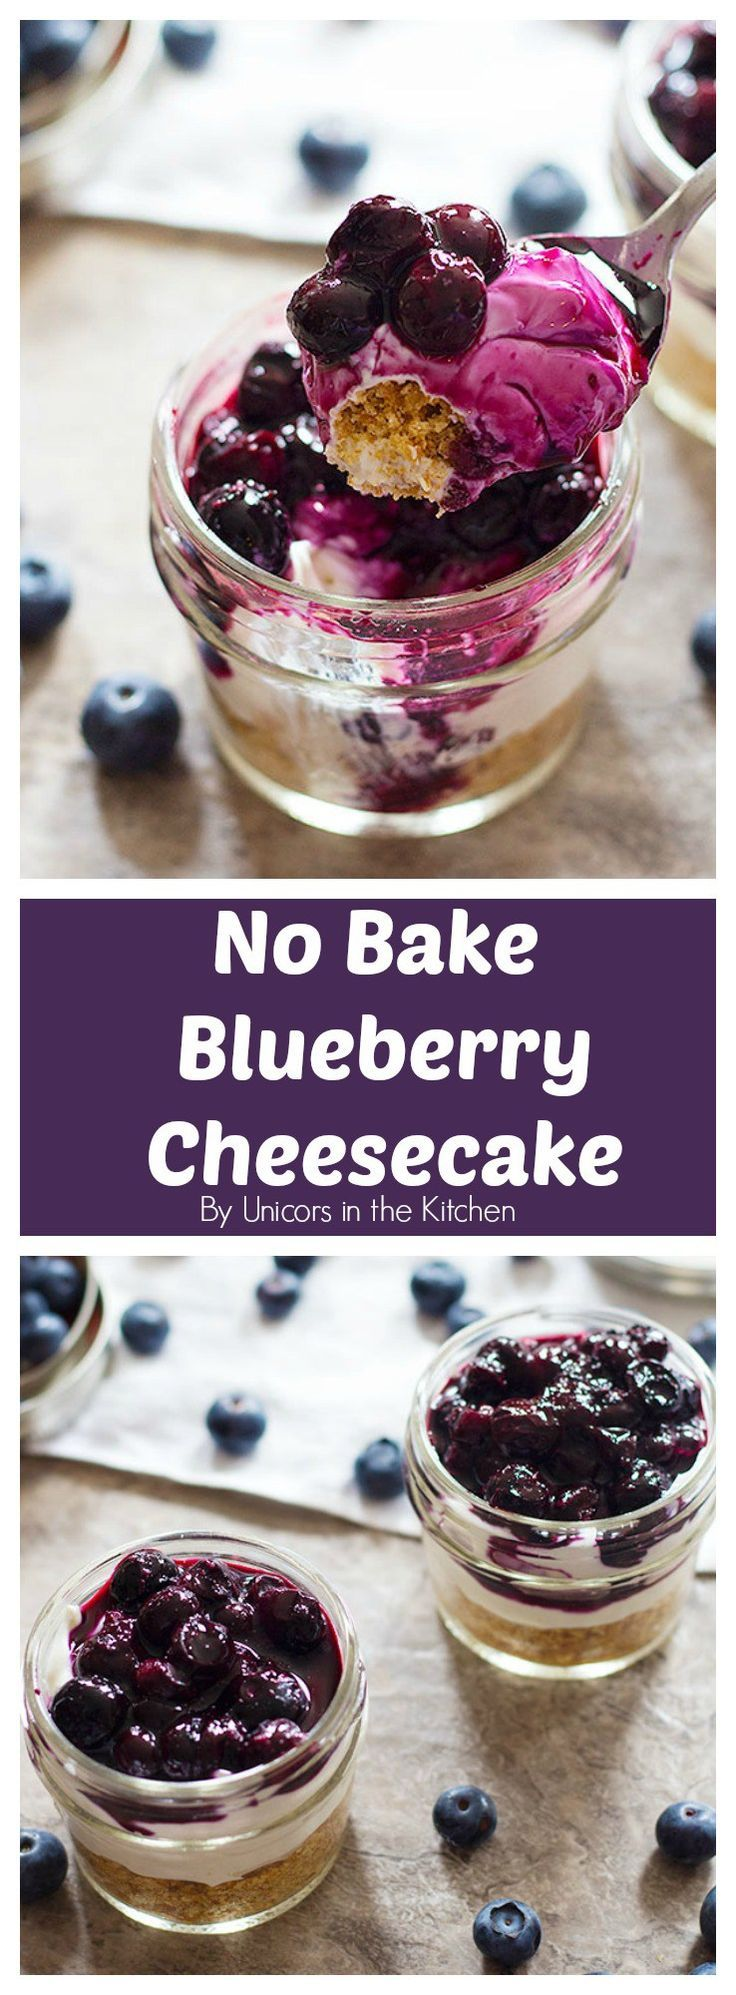 17+ best images about Desserts on Pinterest | Pineapple ...